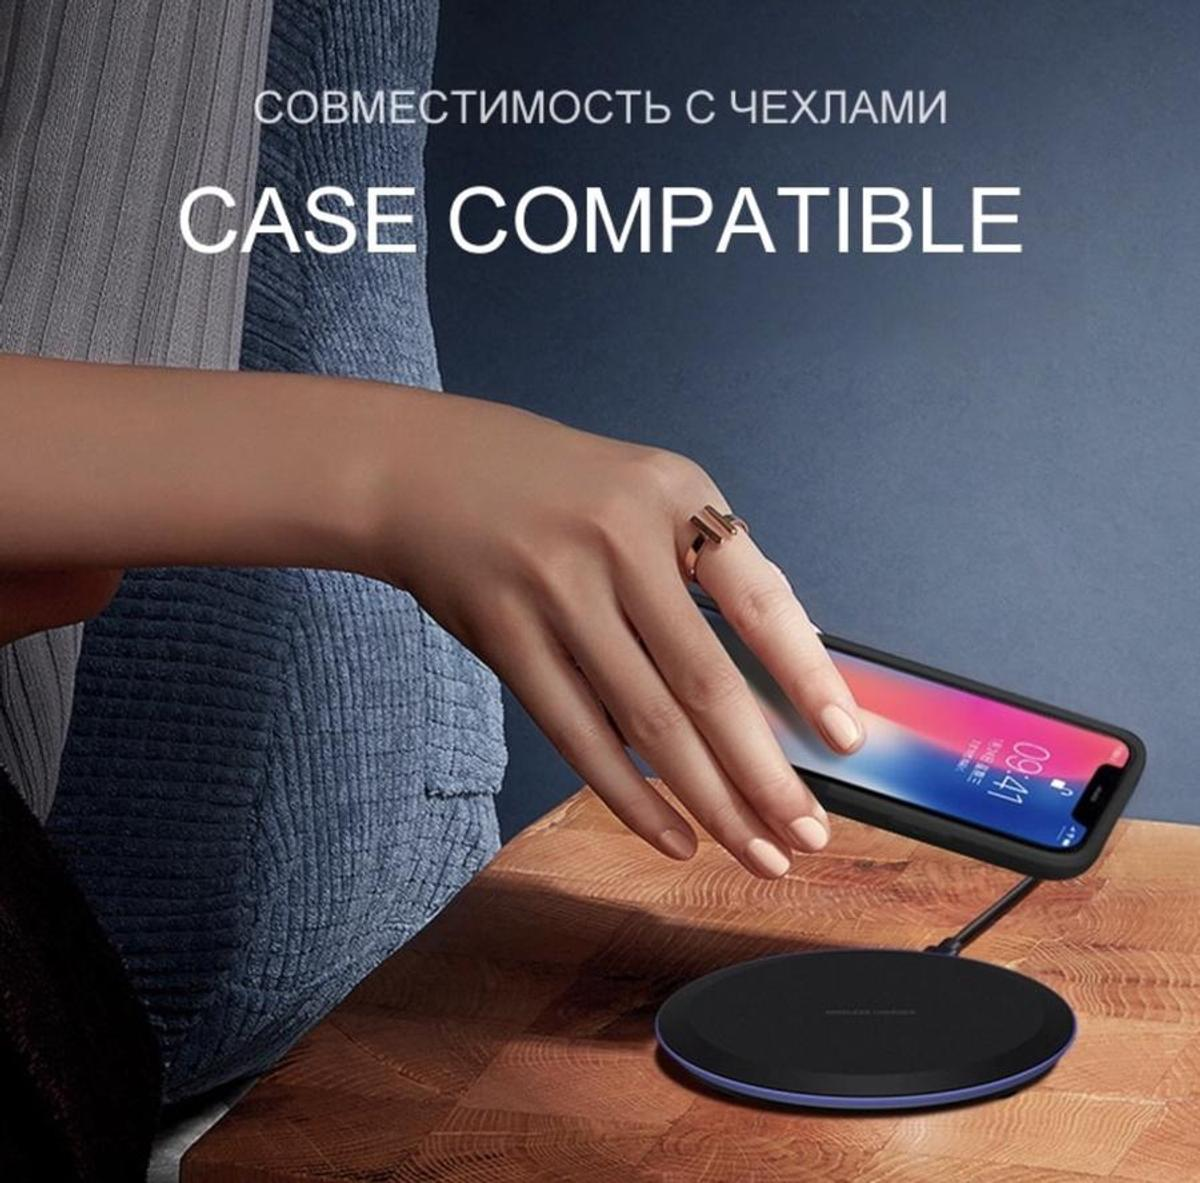 Smartphone wireless charger  Do real safe charging, when the battery is full, it will go to sleep automatically, and the phone last longer.   For iPhone X Xs MAX XR 8 plus Fast Charging for Samsung S8 S9 Plus Note 9 8 USB Phone Charger Pad